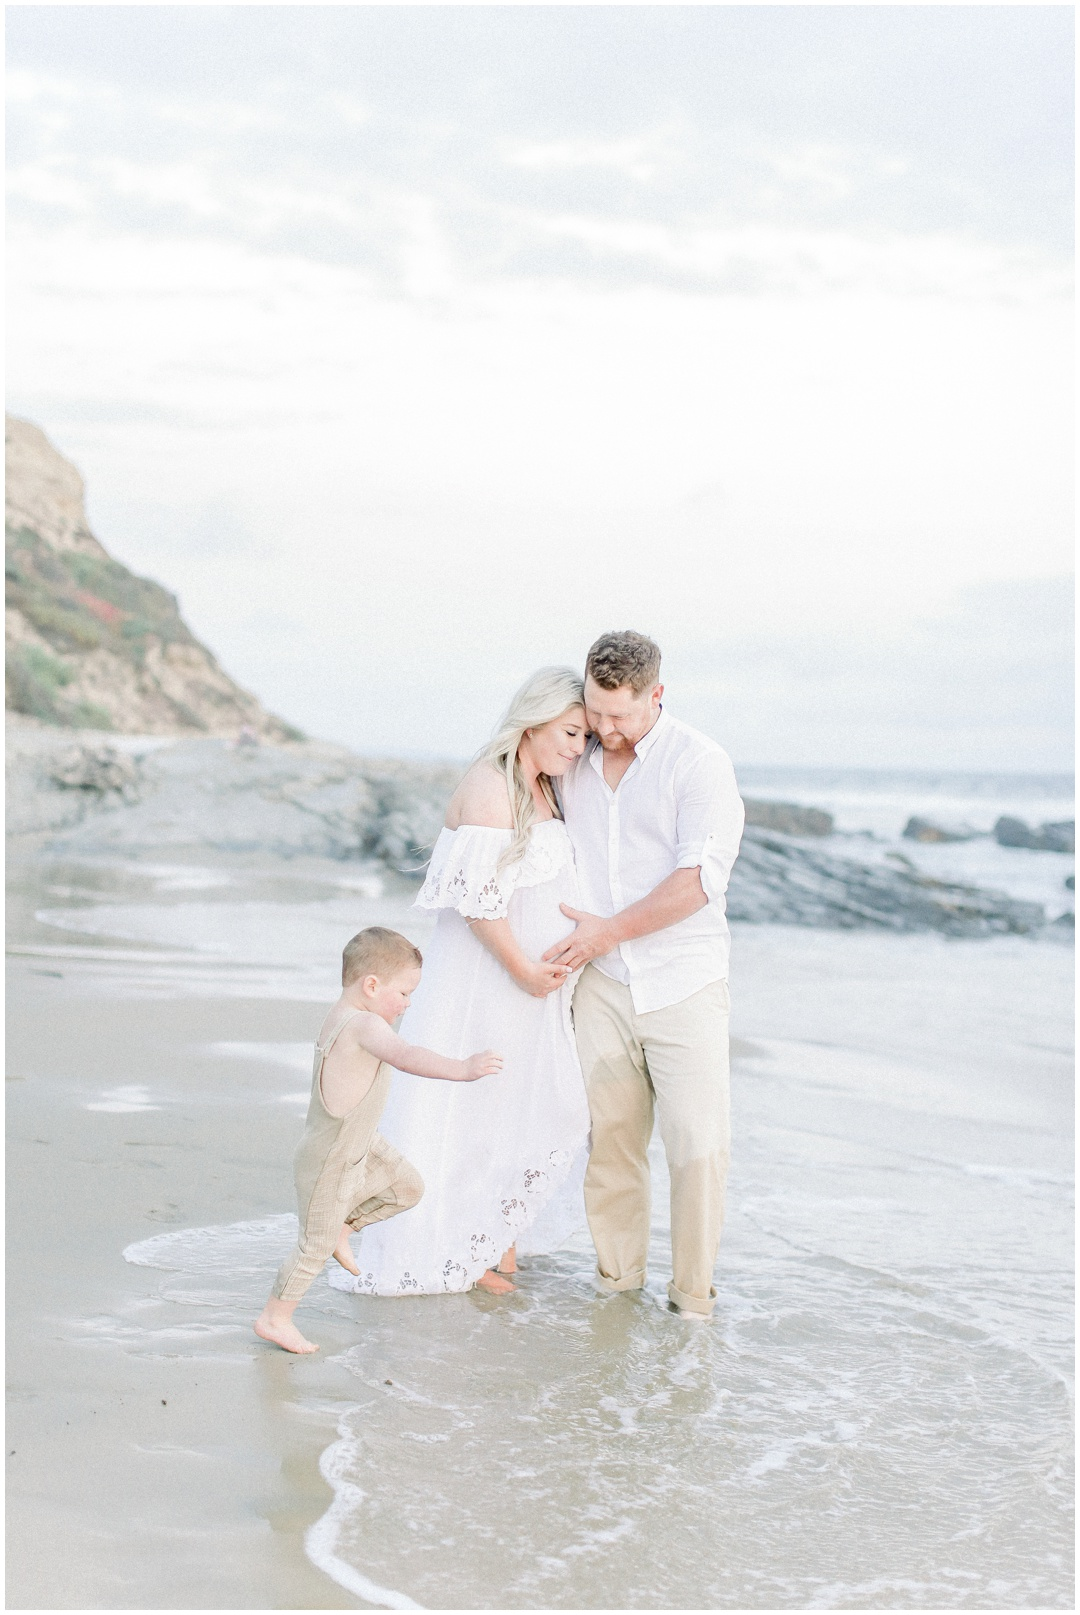 Newport_Beach_Newborn_Light_Airy_Natural_Photographer_Newport_Beach_Photographer_Orange_County_Family_Photographer_Cori_Kleckner_Photography_Newport_Beach_Photographer_Maternity_kole_calhoun56_kole_calhoun_Jennifer_Calhoun_Knox_Calhoun_3710.jpg